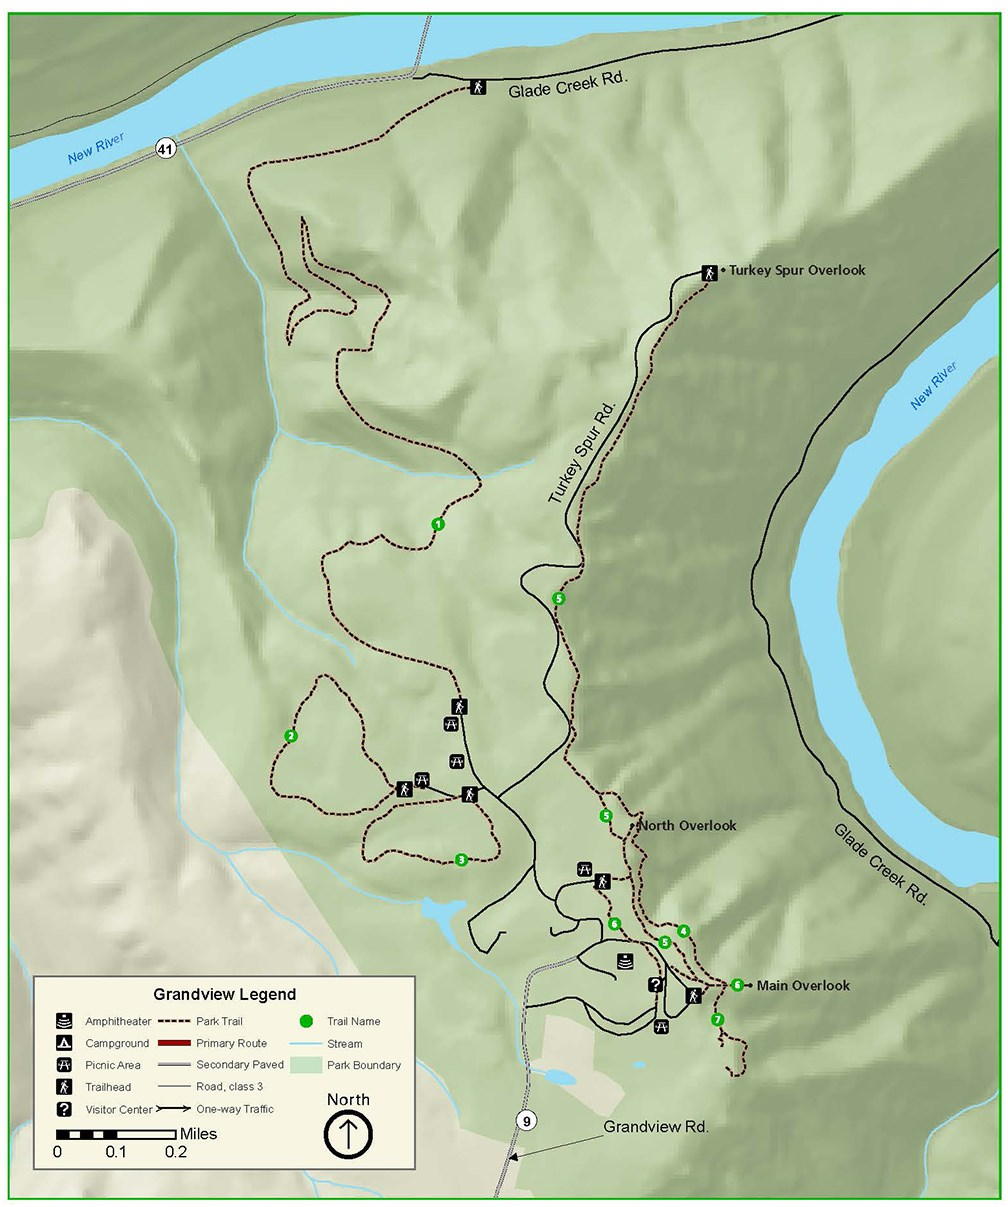 grandview hiking map new river gorge national river u s